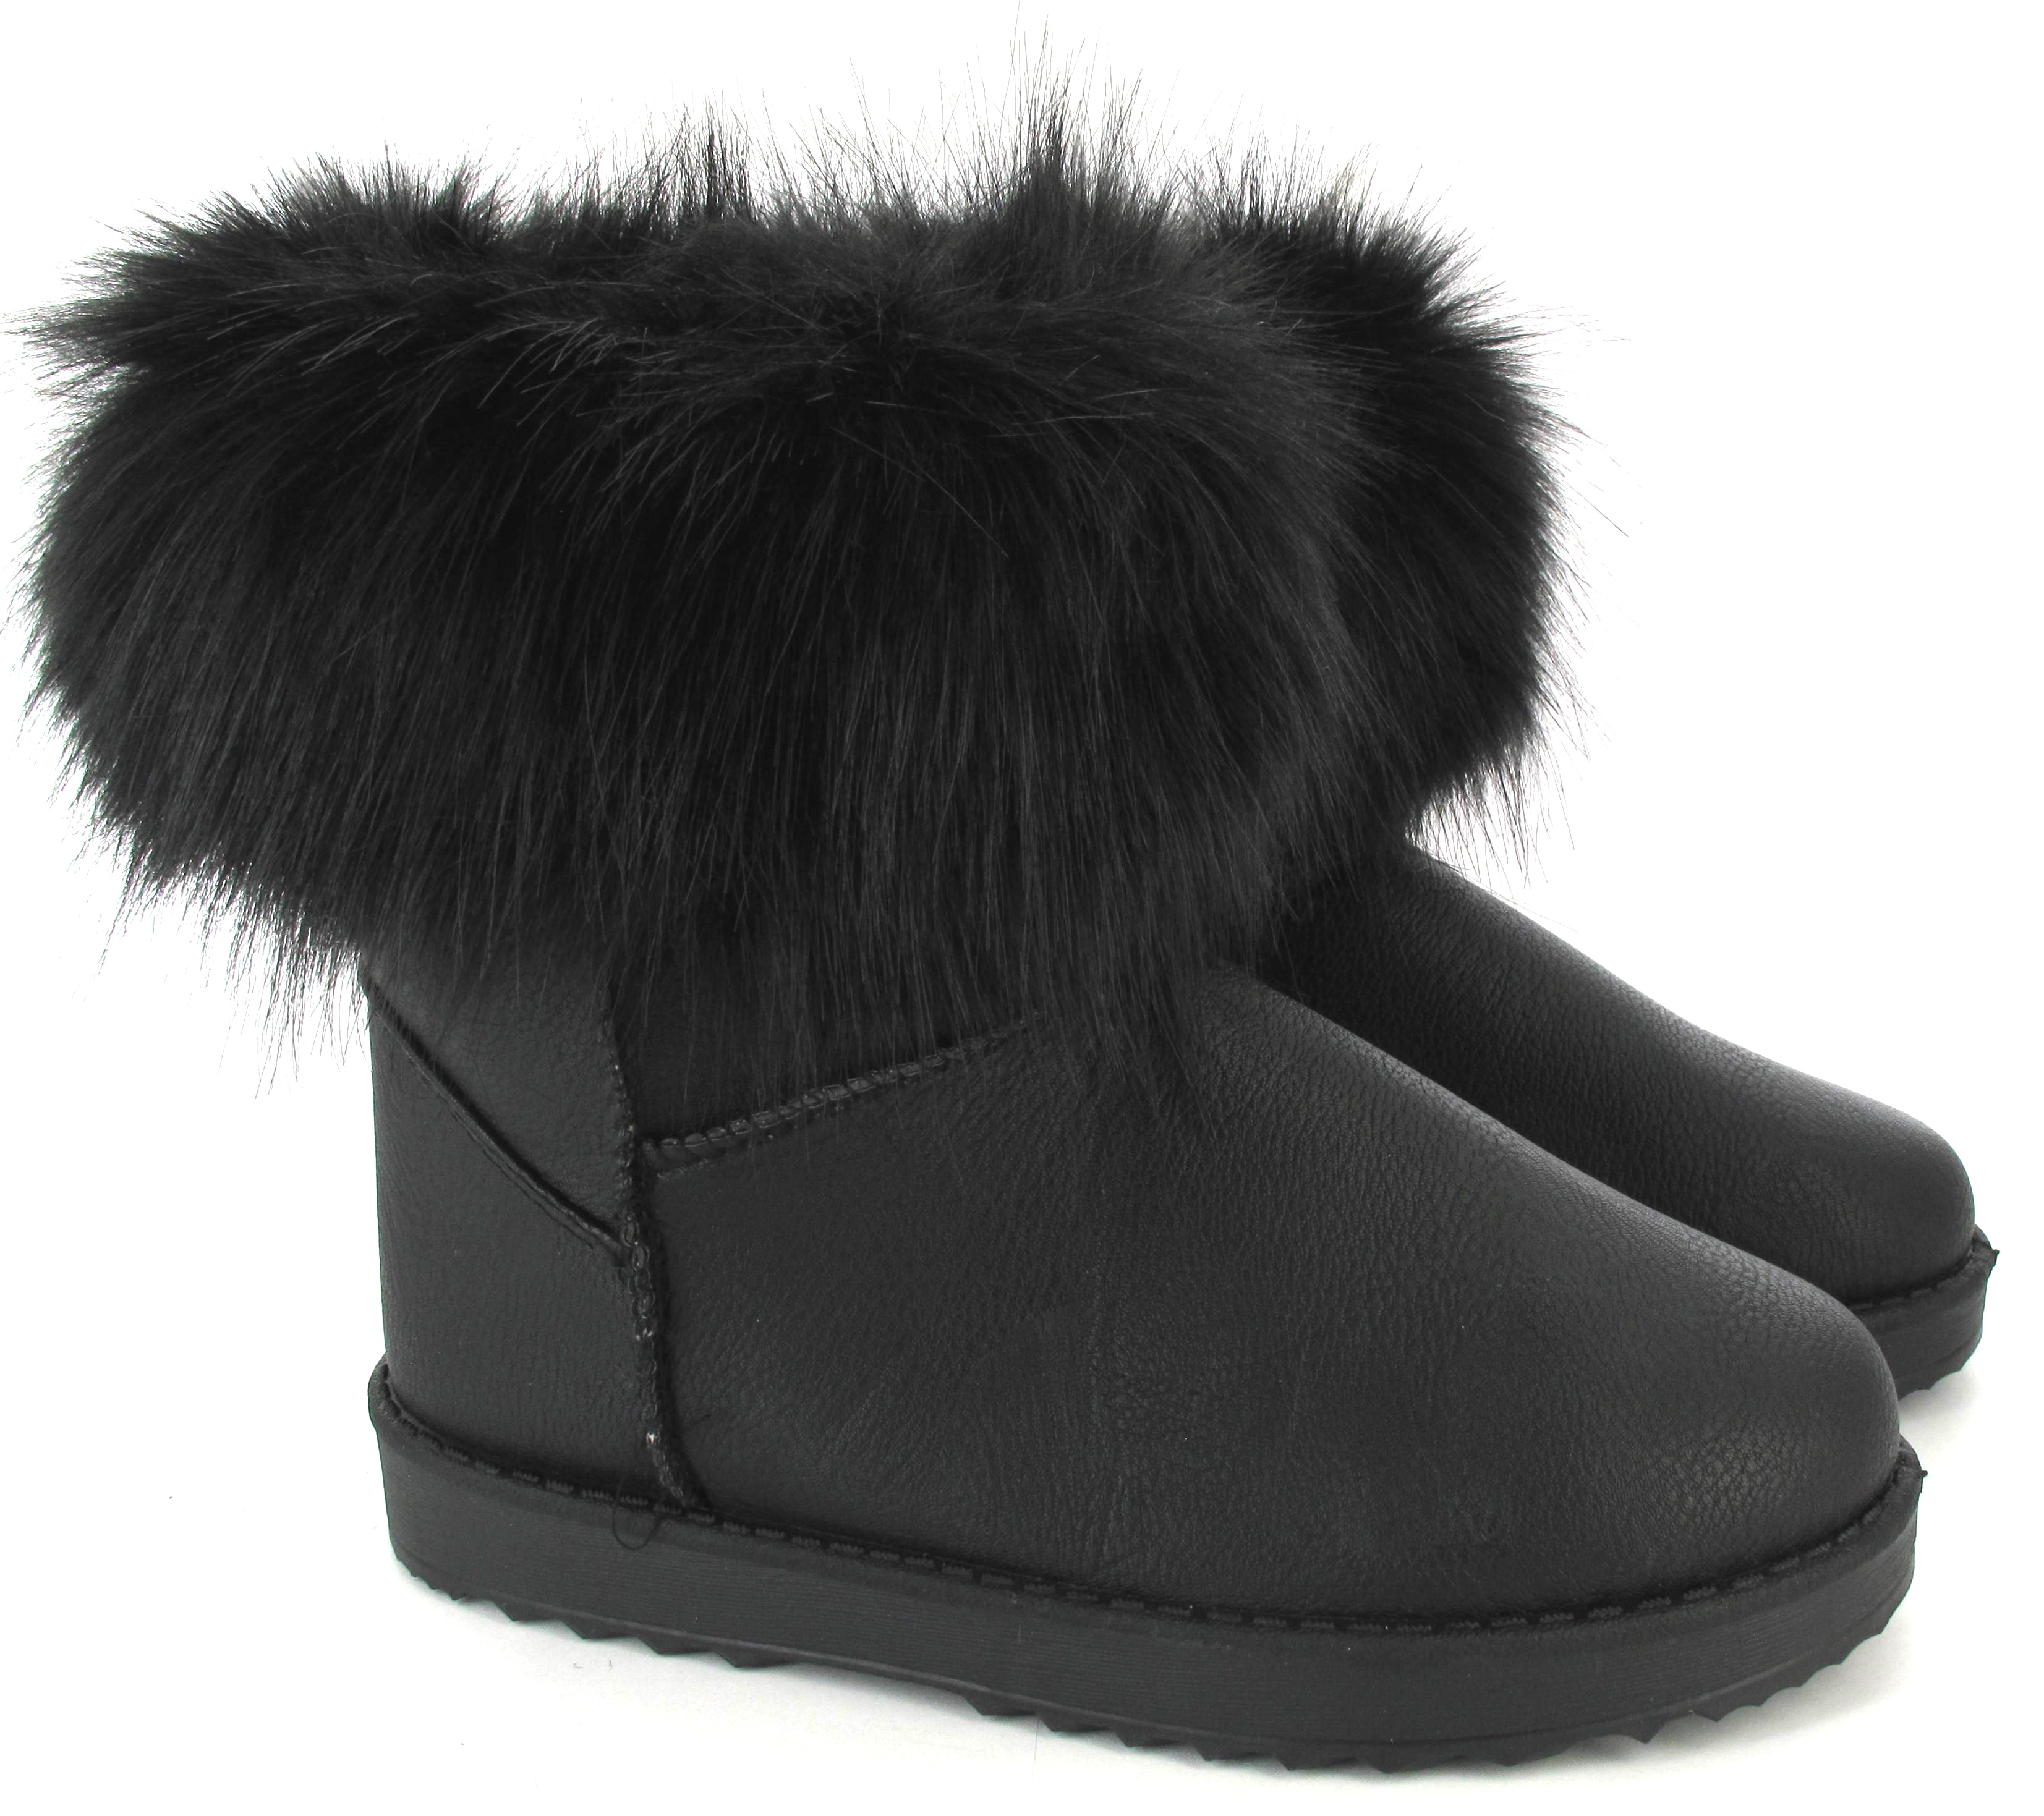 WOMENS QUILTED WINTER FUR LINED LADIES FASHION SNOW ANKLE BOOTS ...